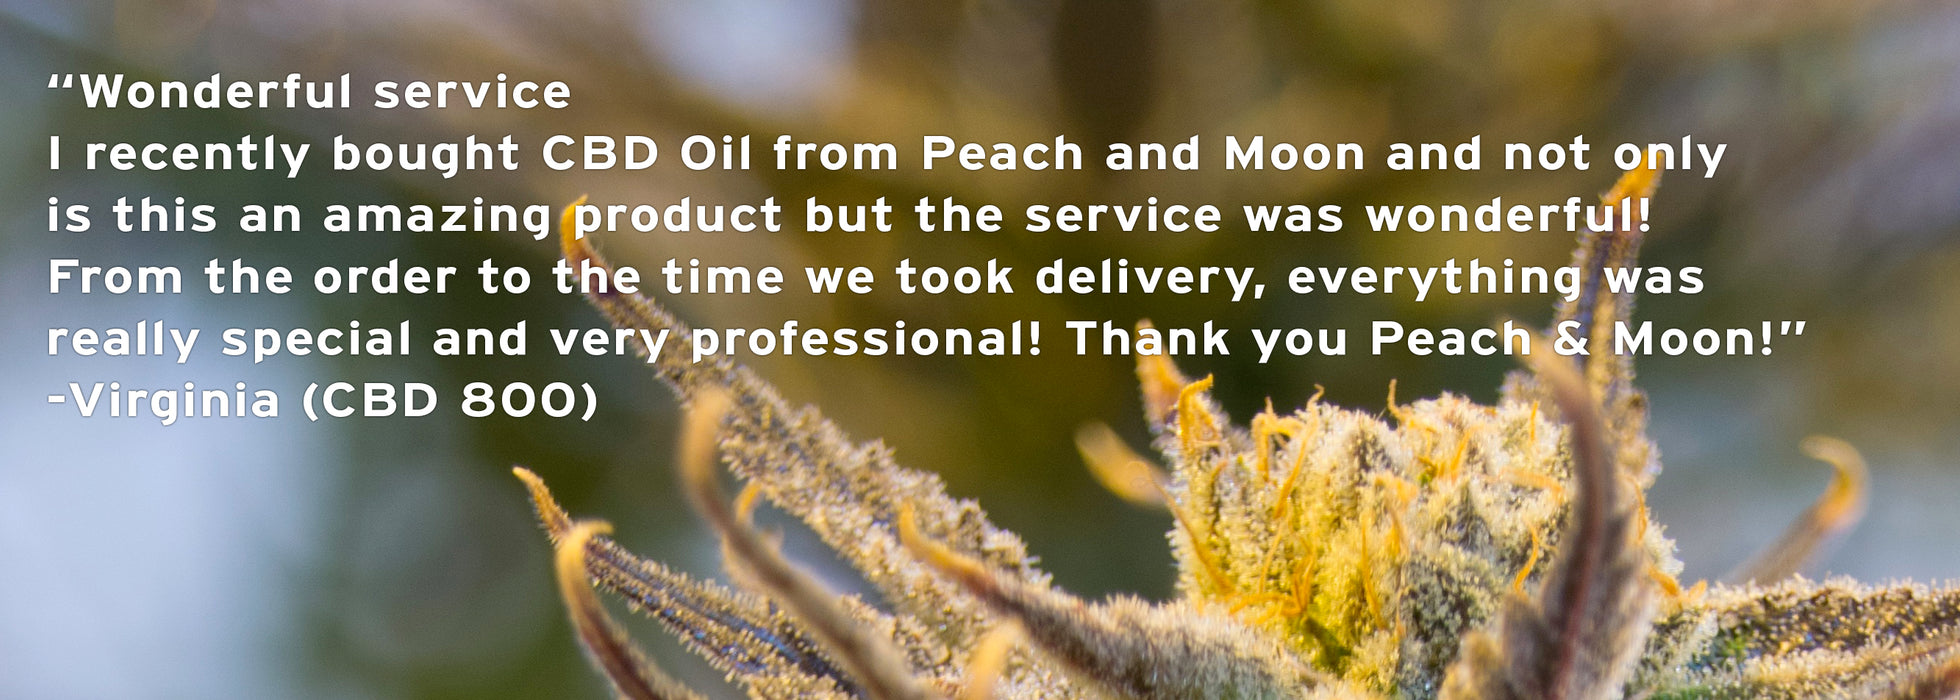 CBD 800 (Organic) - Set of 2 - Peach & Moon Organics